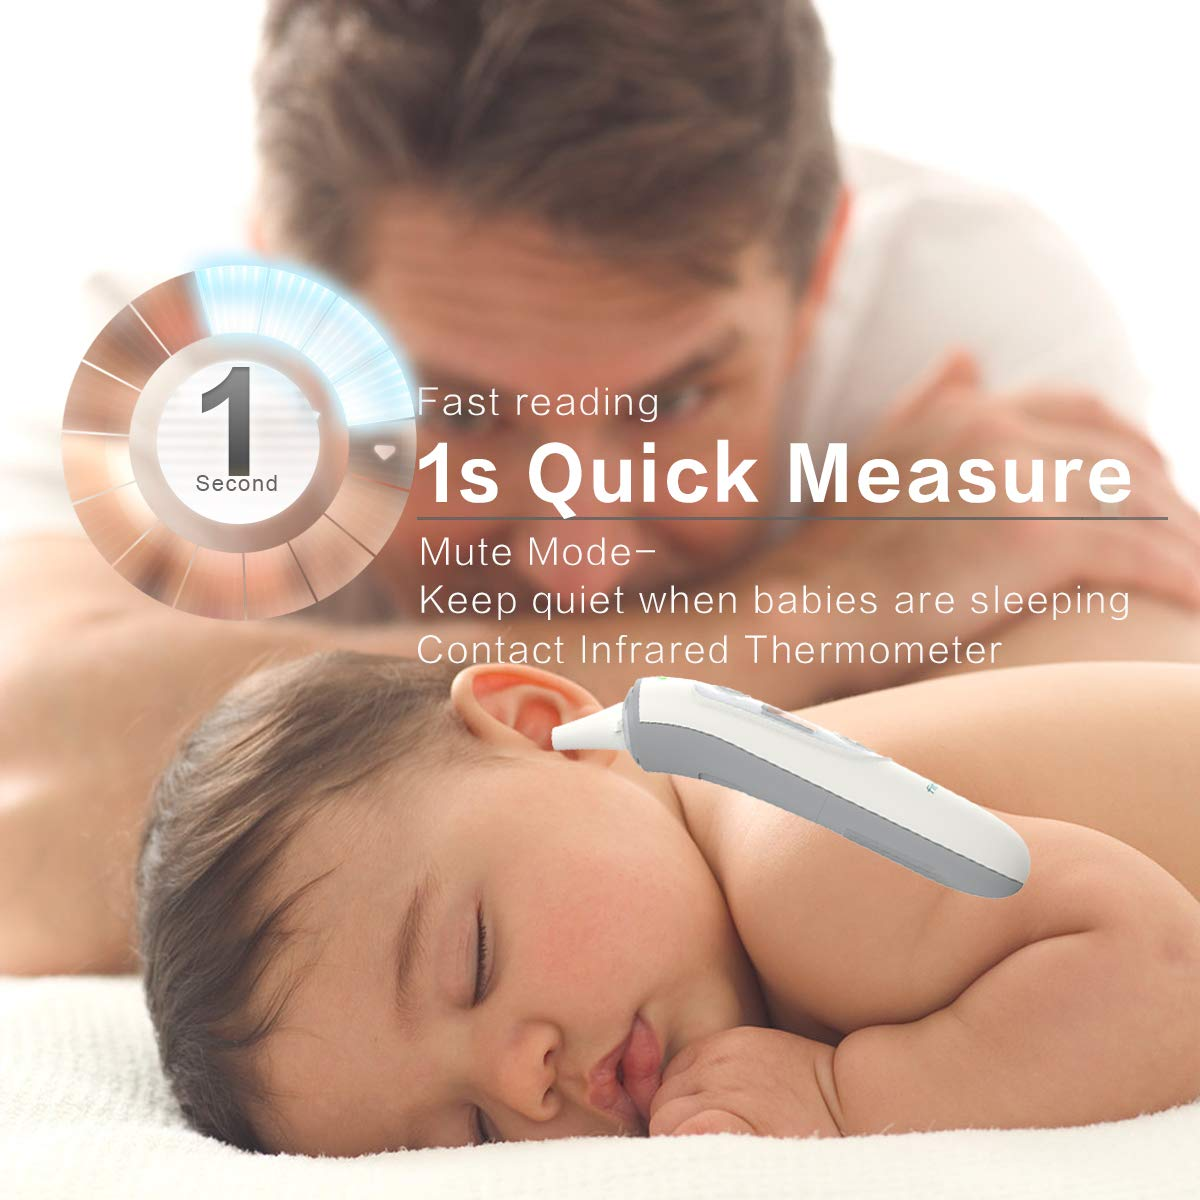 Digital Infrared Baby Thermometer, Firhealth Ear Forehead Object Room Professional 4 in 1, Accurate Fever Indicator Instant Read,Suitable for Baby, Adult, Object and Ambient, FDA CE Approved by FIRHEALTH (Image #4)